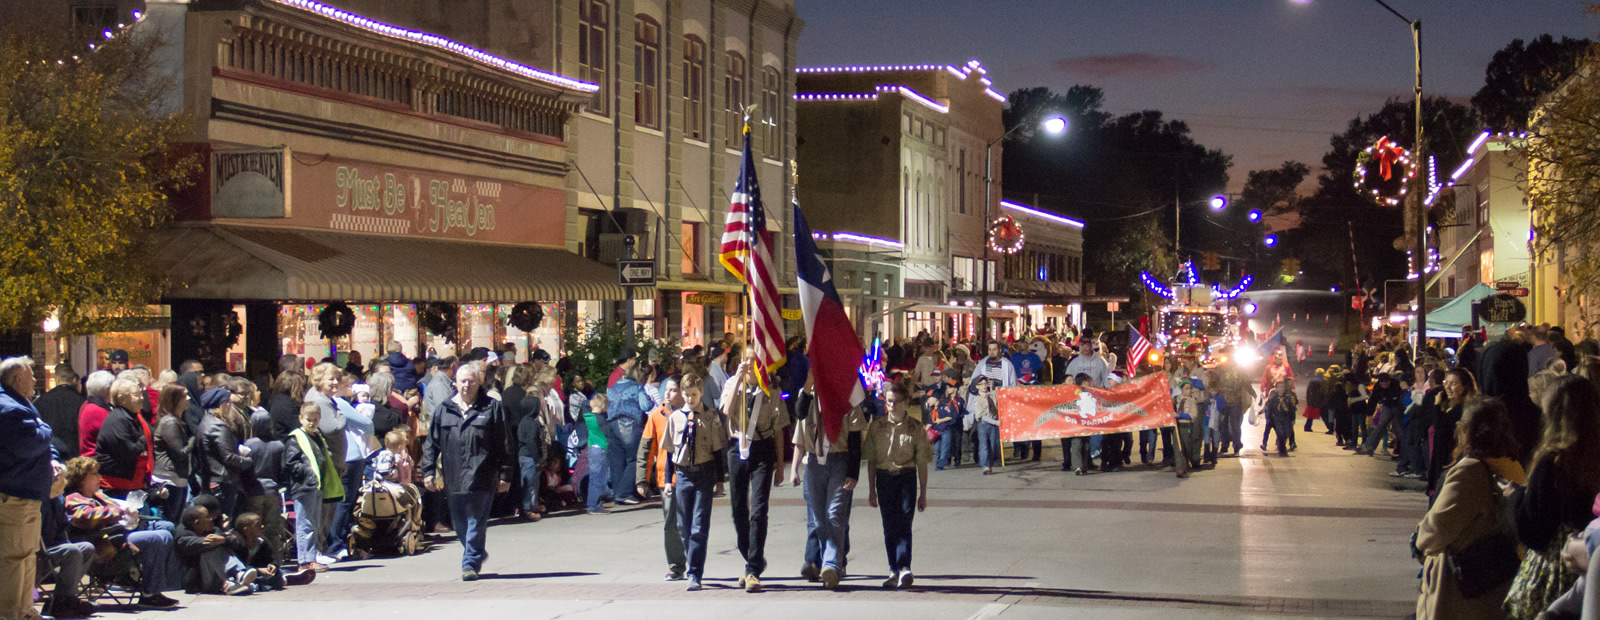 lighted-parade-02-1600x620